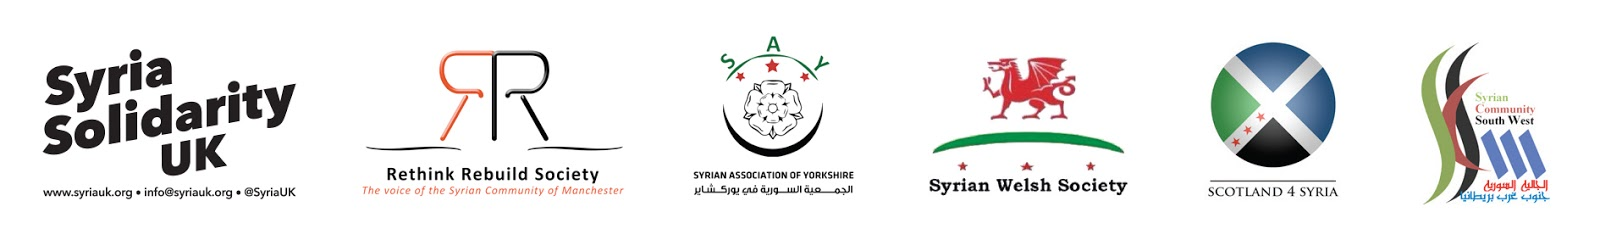 Syria Solidarity UK: To the participants and organisers of ...